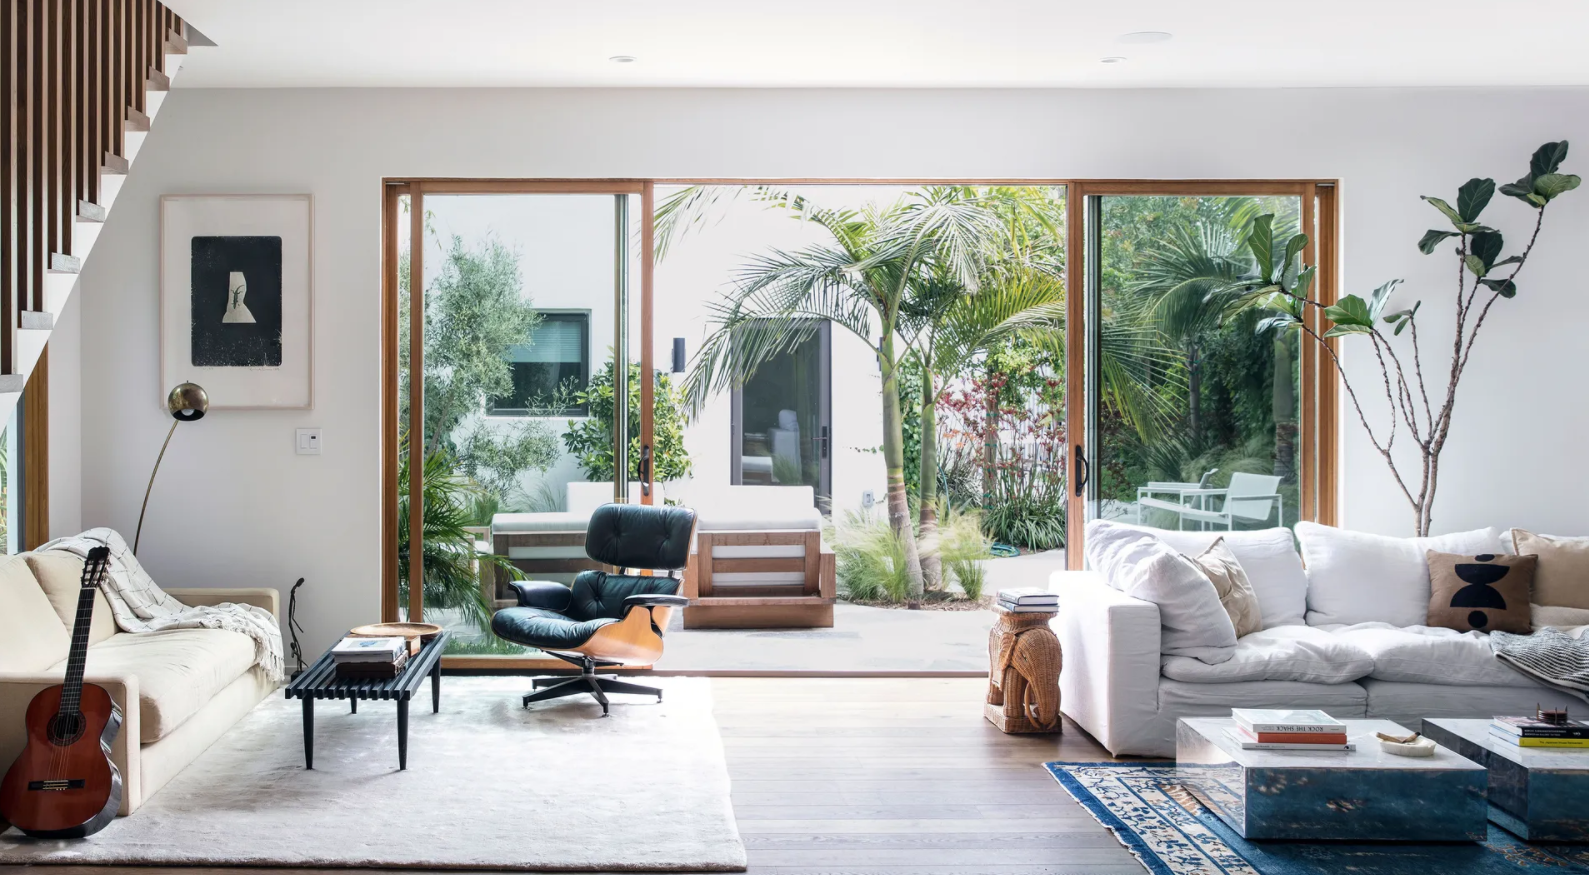 sustainable and holistic interior design